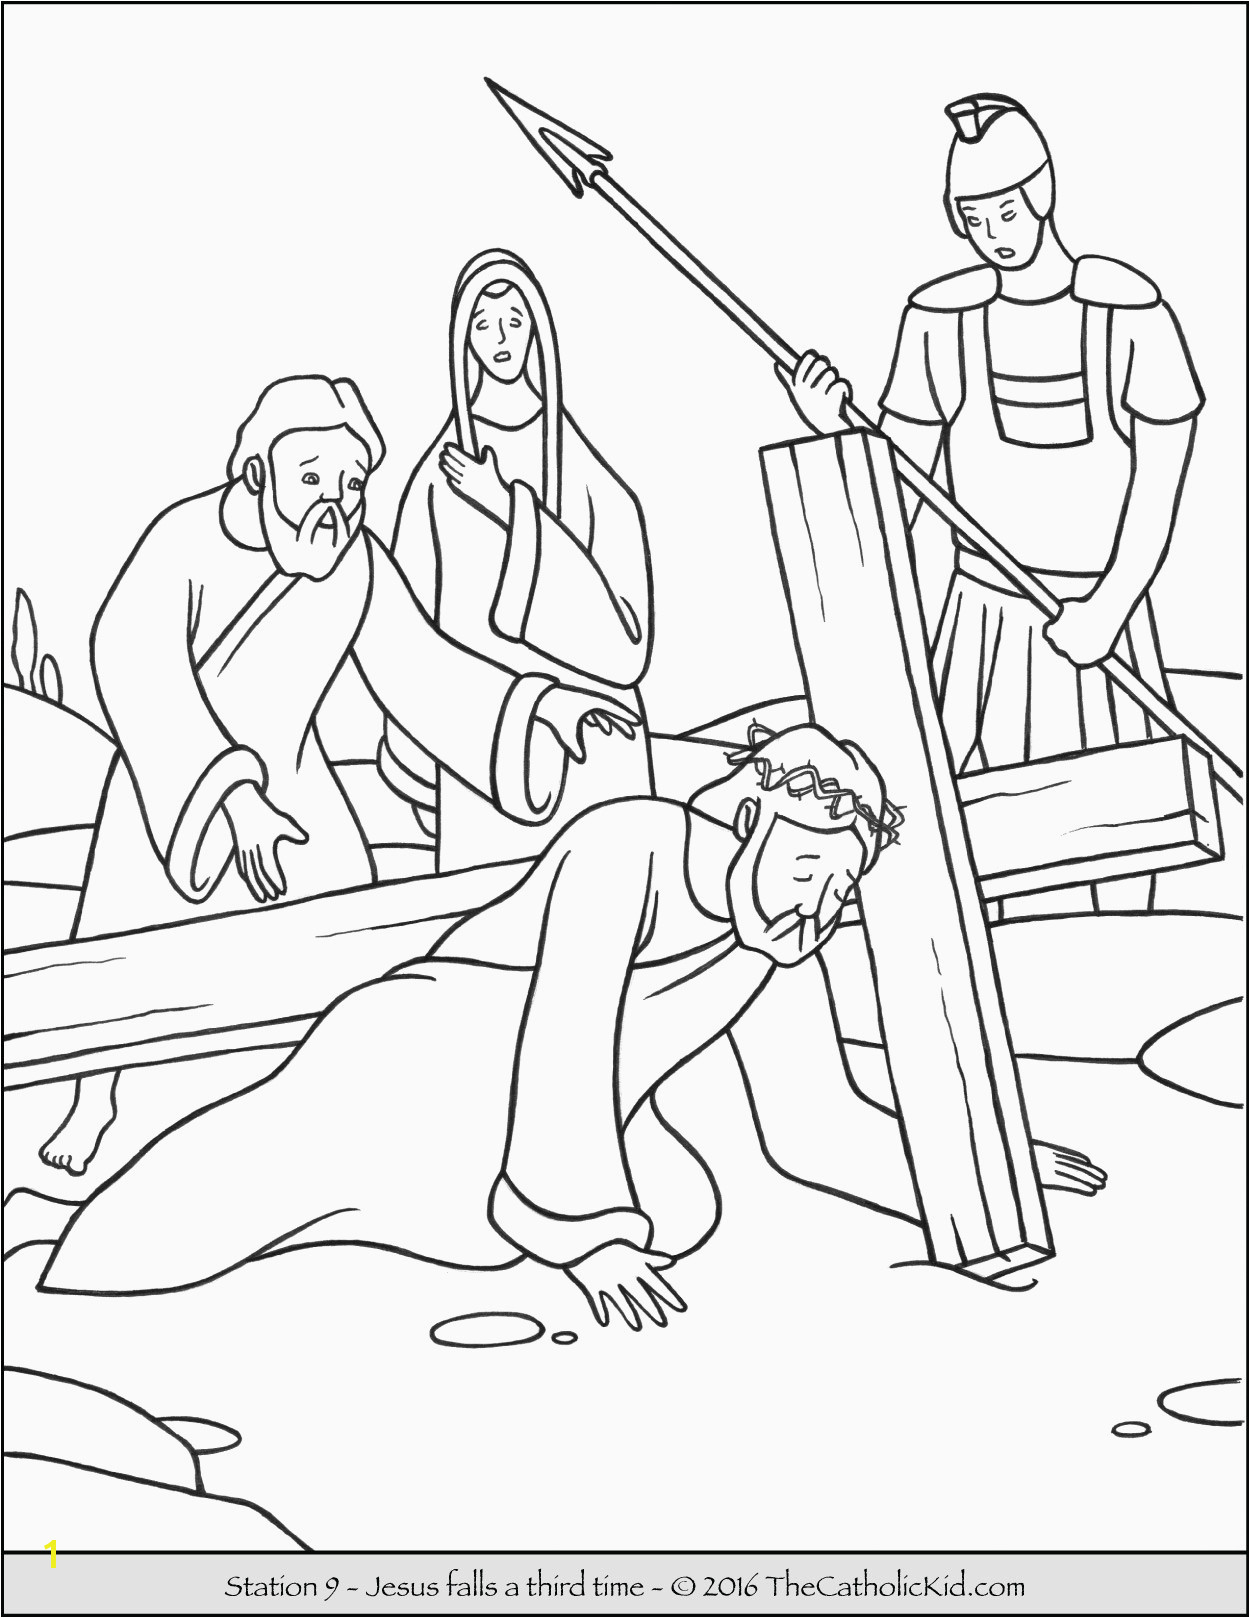 Coloring Pages Jesus As A Boy For Disciples Od Christ Catching At Page Free Printable